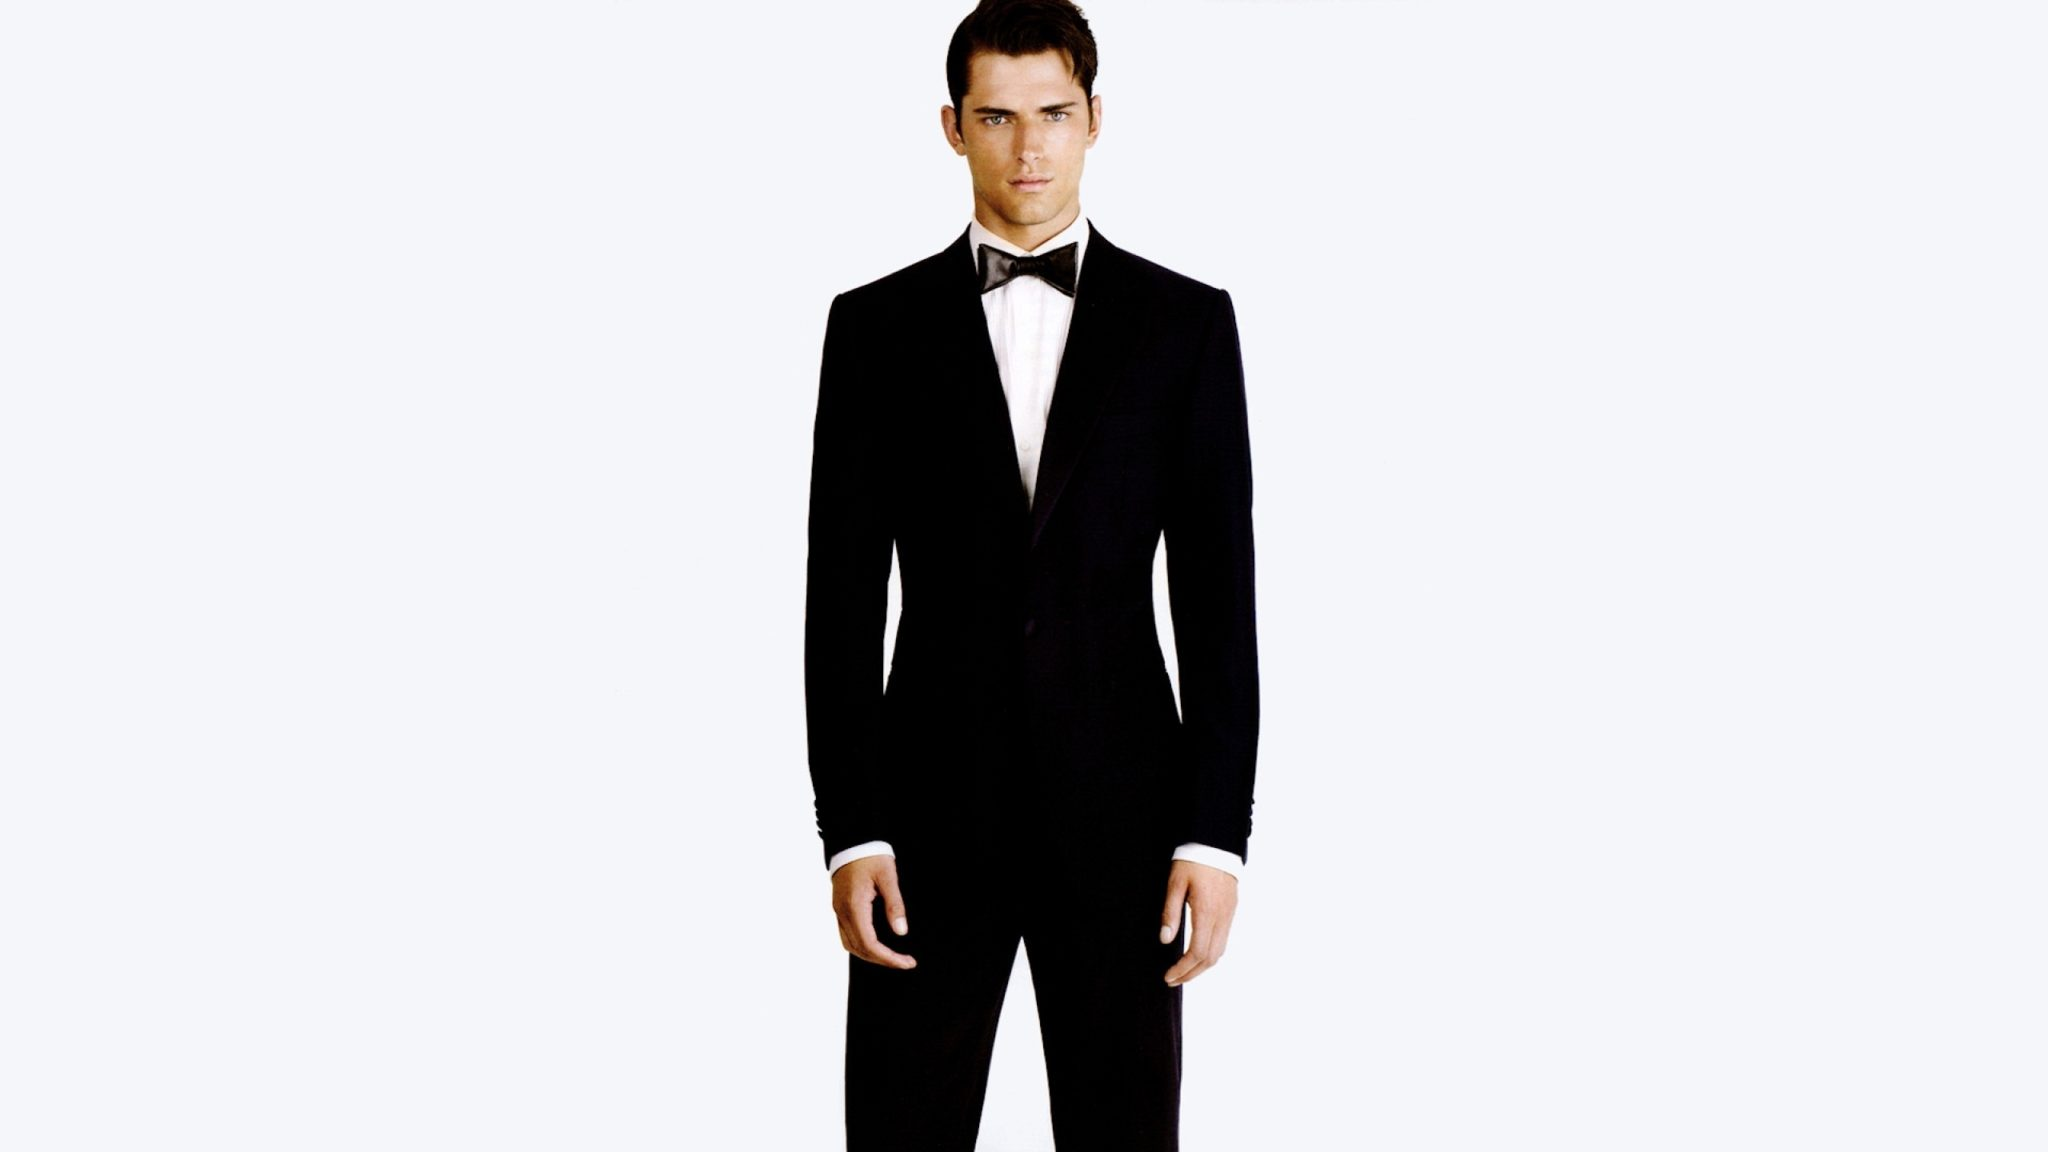 Classic Tuxedo with Black Bow Tie and White Shirt